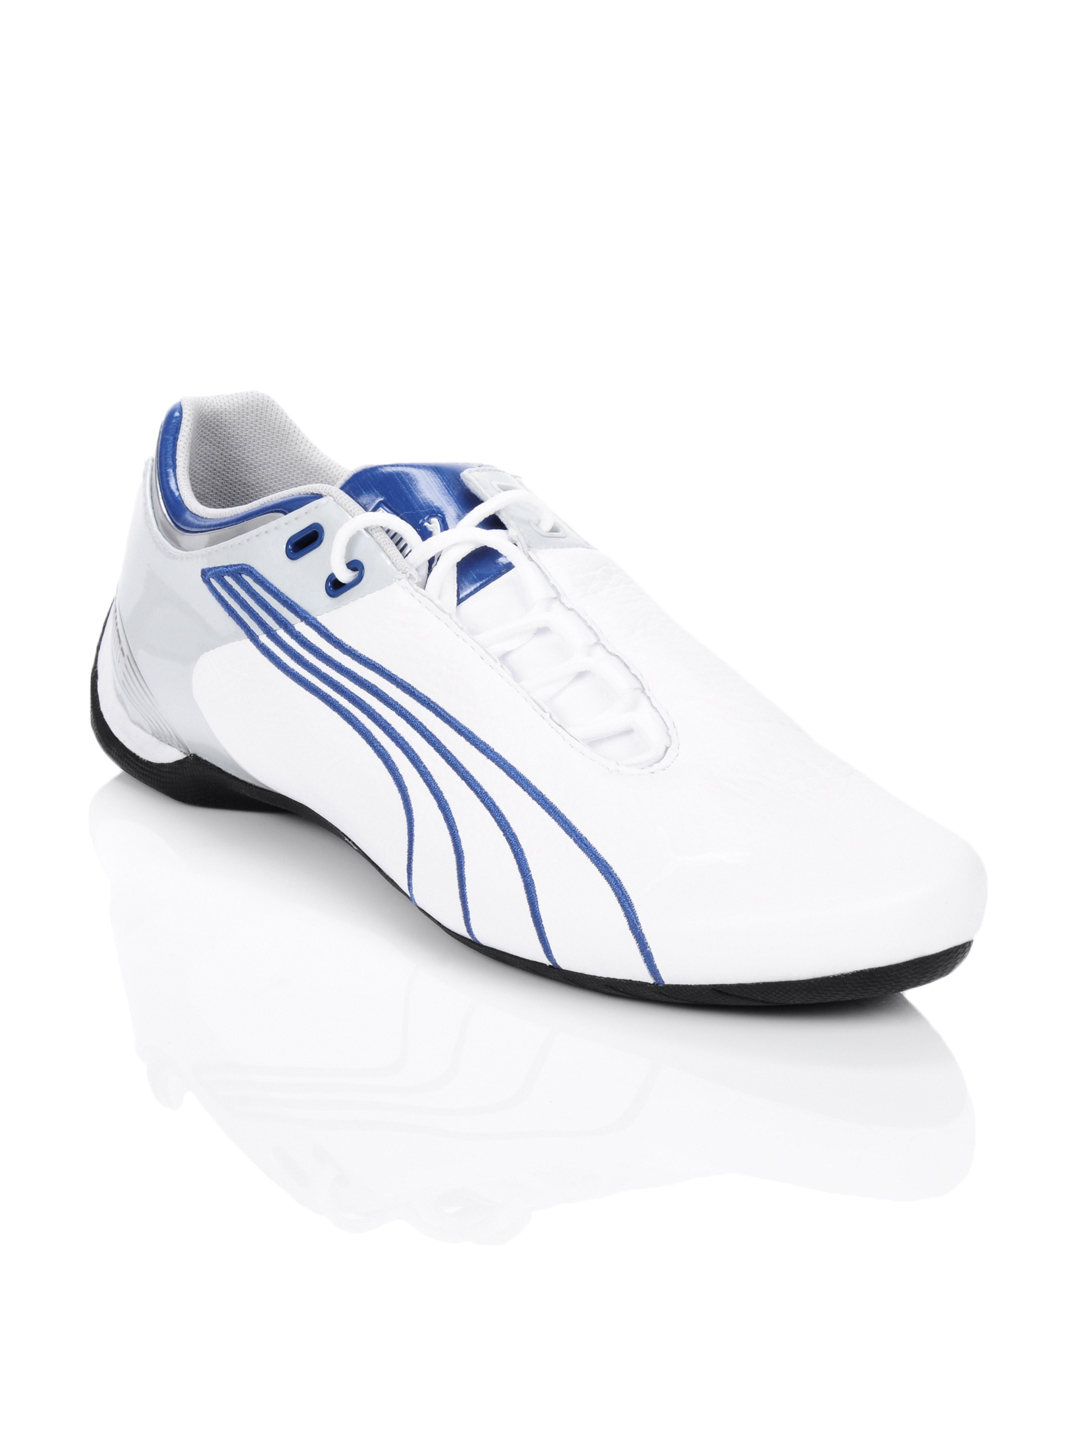 Puma Men Future Cat White Shoes